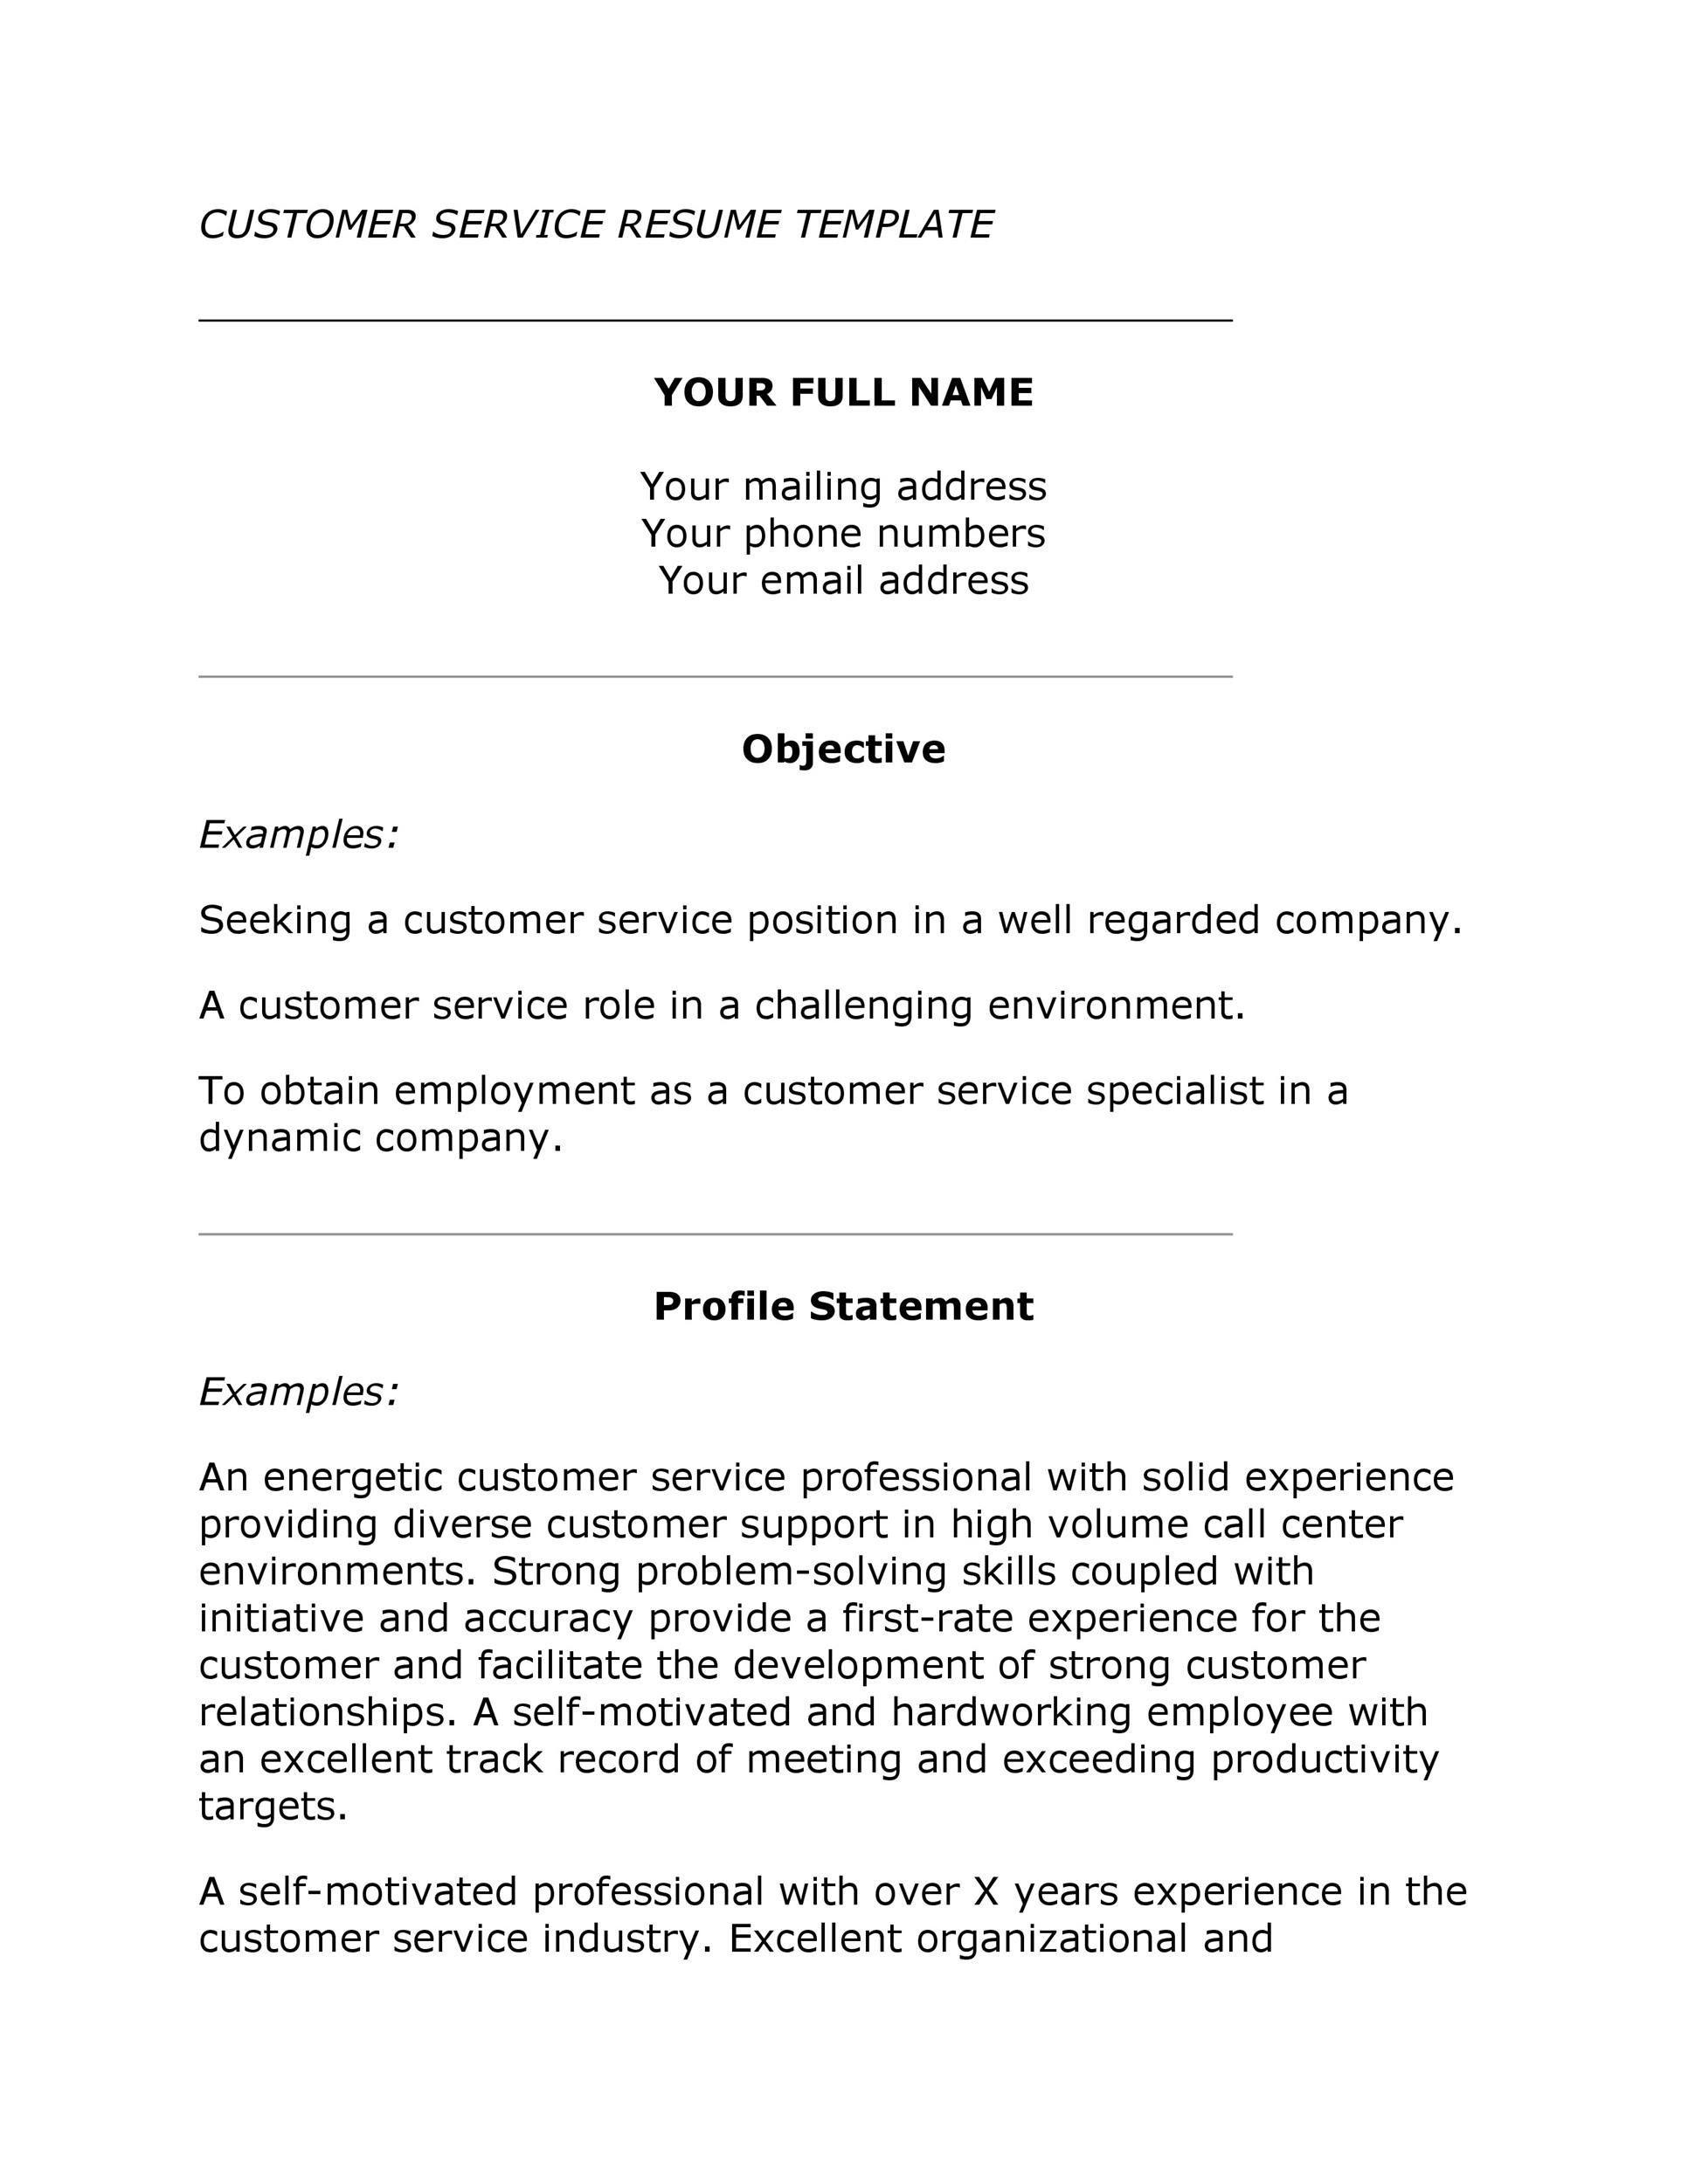 30+ Customer Service Resume Examples - Template Lab - service industry resume